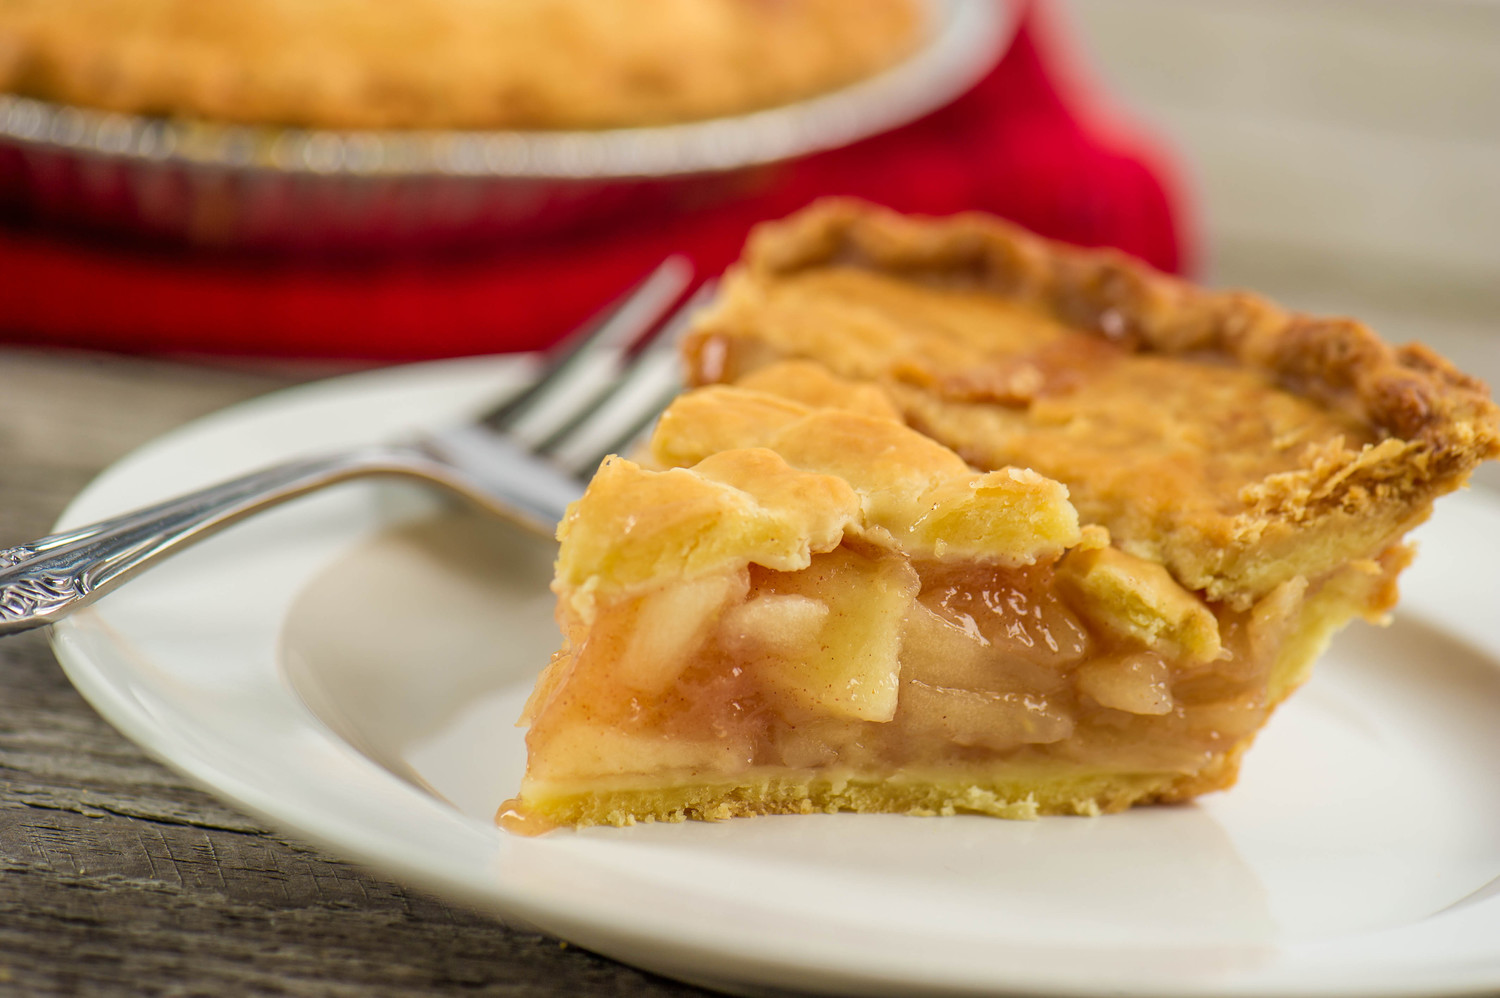 Apple pie is always welcome, whether as a scrumptious ending to a meal or anytime in between.